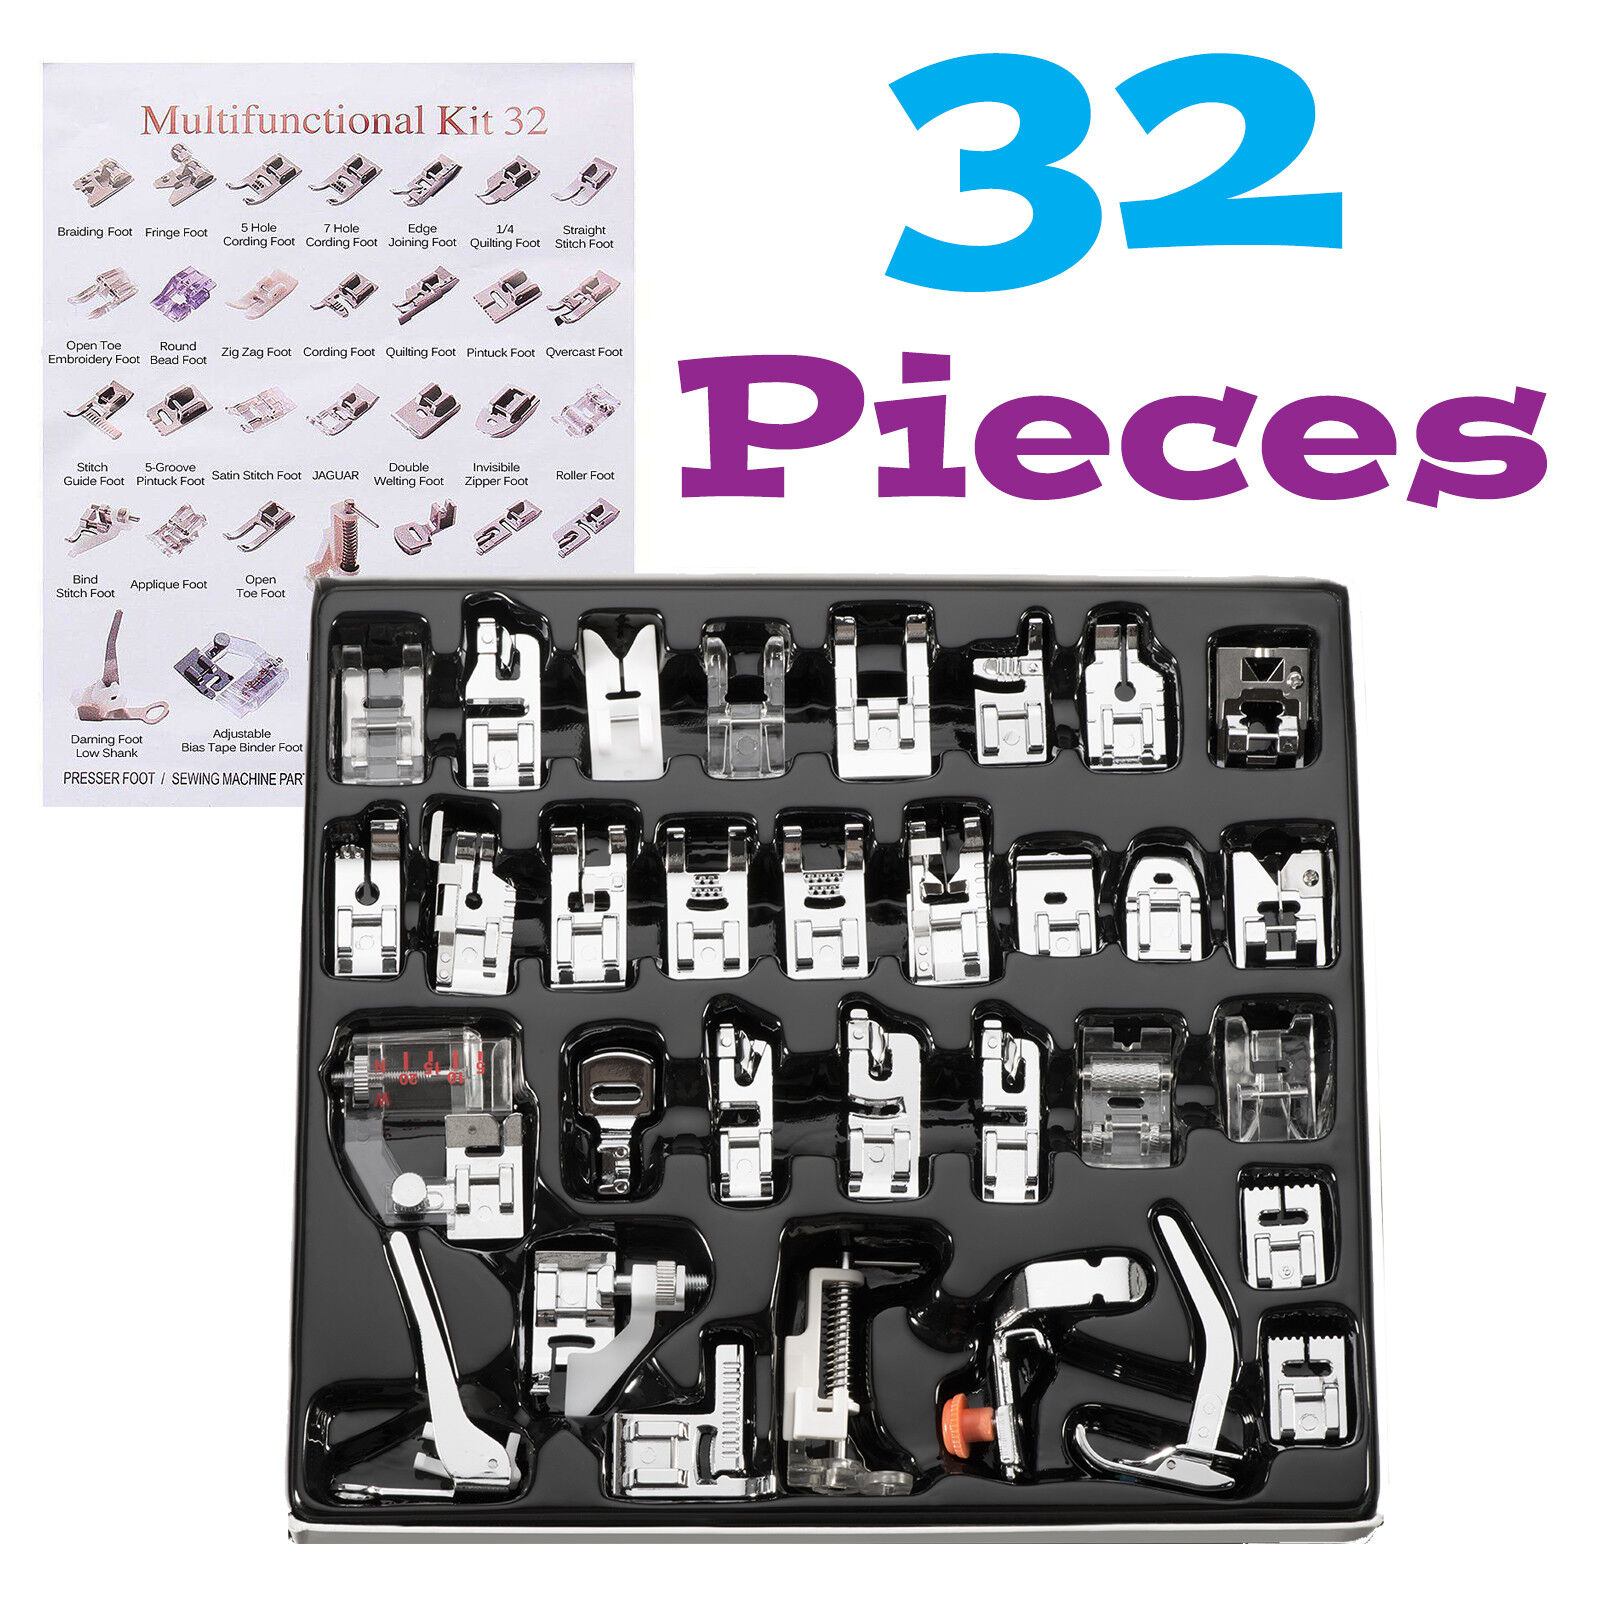 32pcs Domestic Sewing Machine Presser Foot Feet Set for Brother Singer Janome Crafts